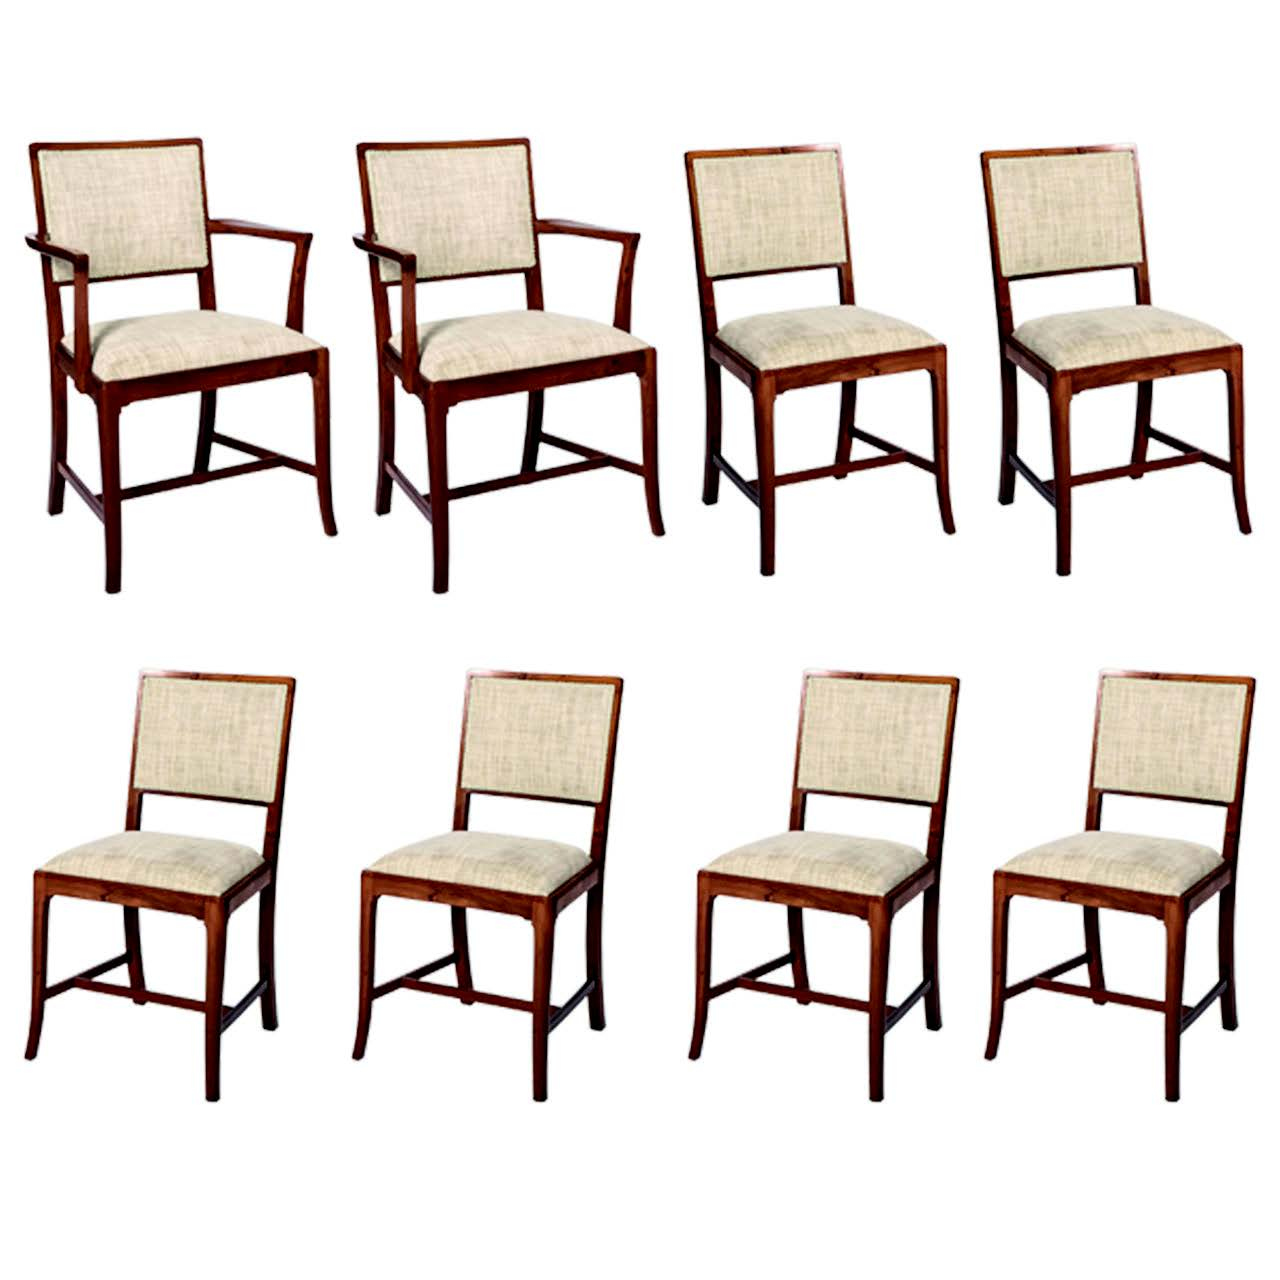 A set of eight yewdining chairs by Heal'sof London, c. 1930